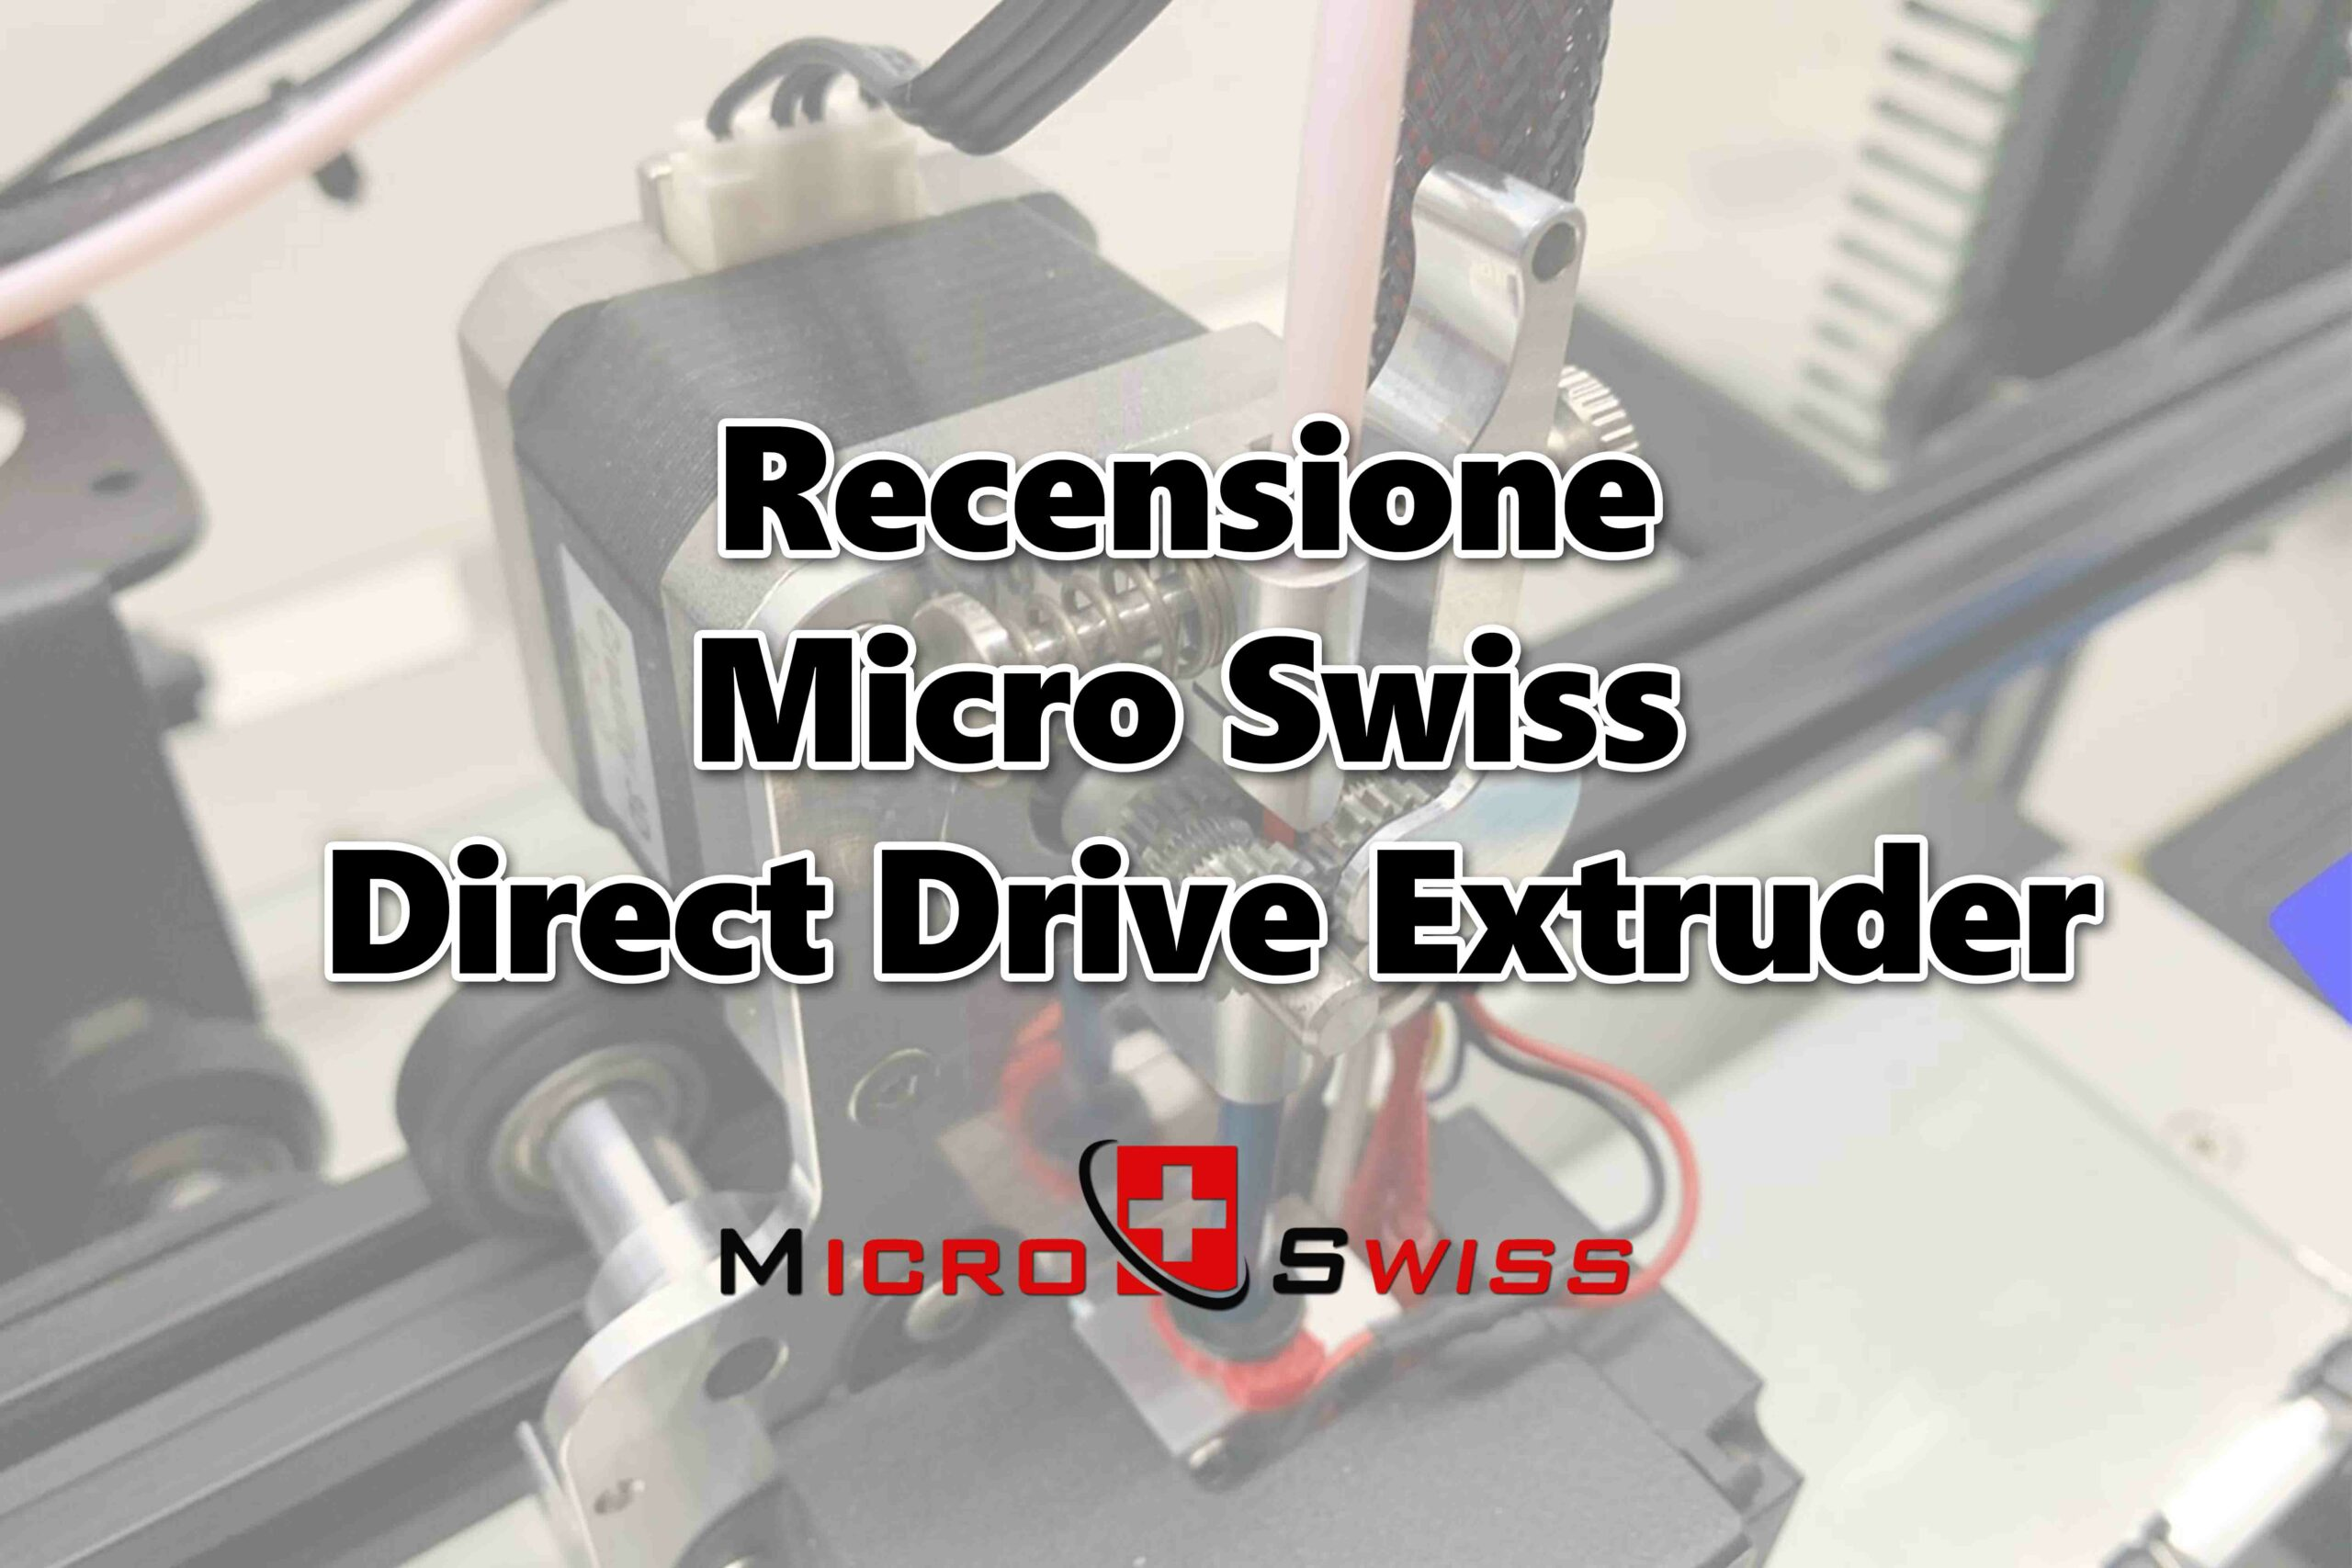 Recensione Micro Swiss Direct Drive Extruder per Creality CR10 e Ender 3